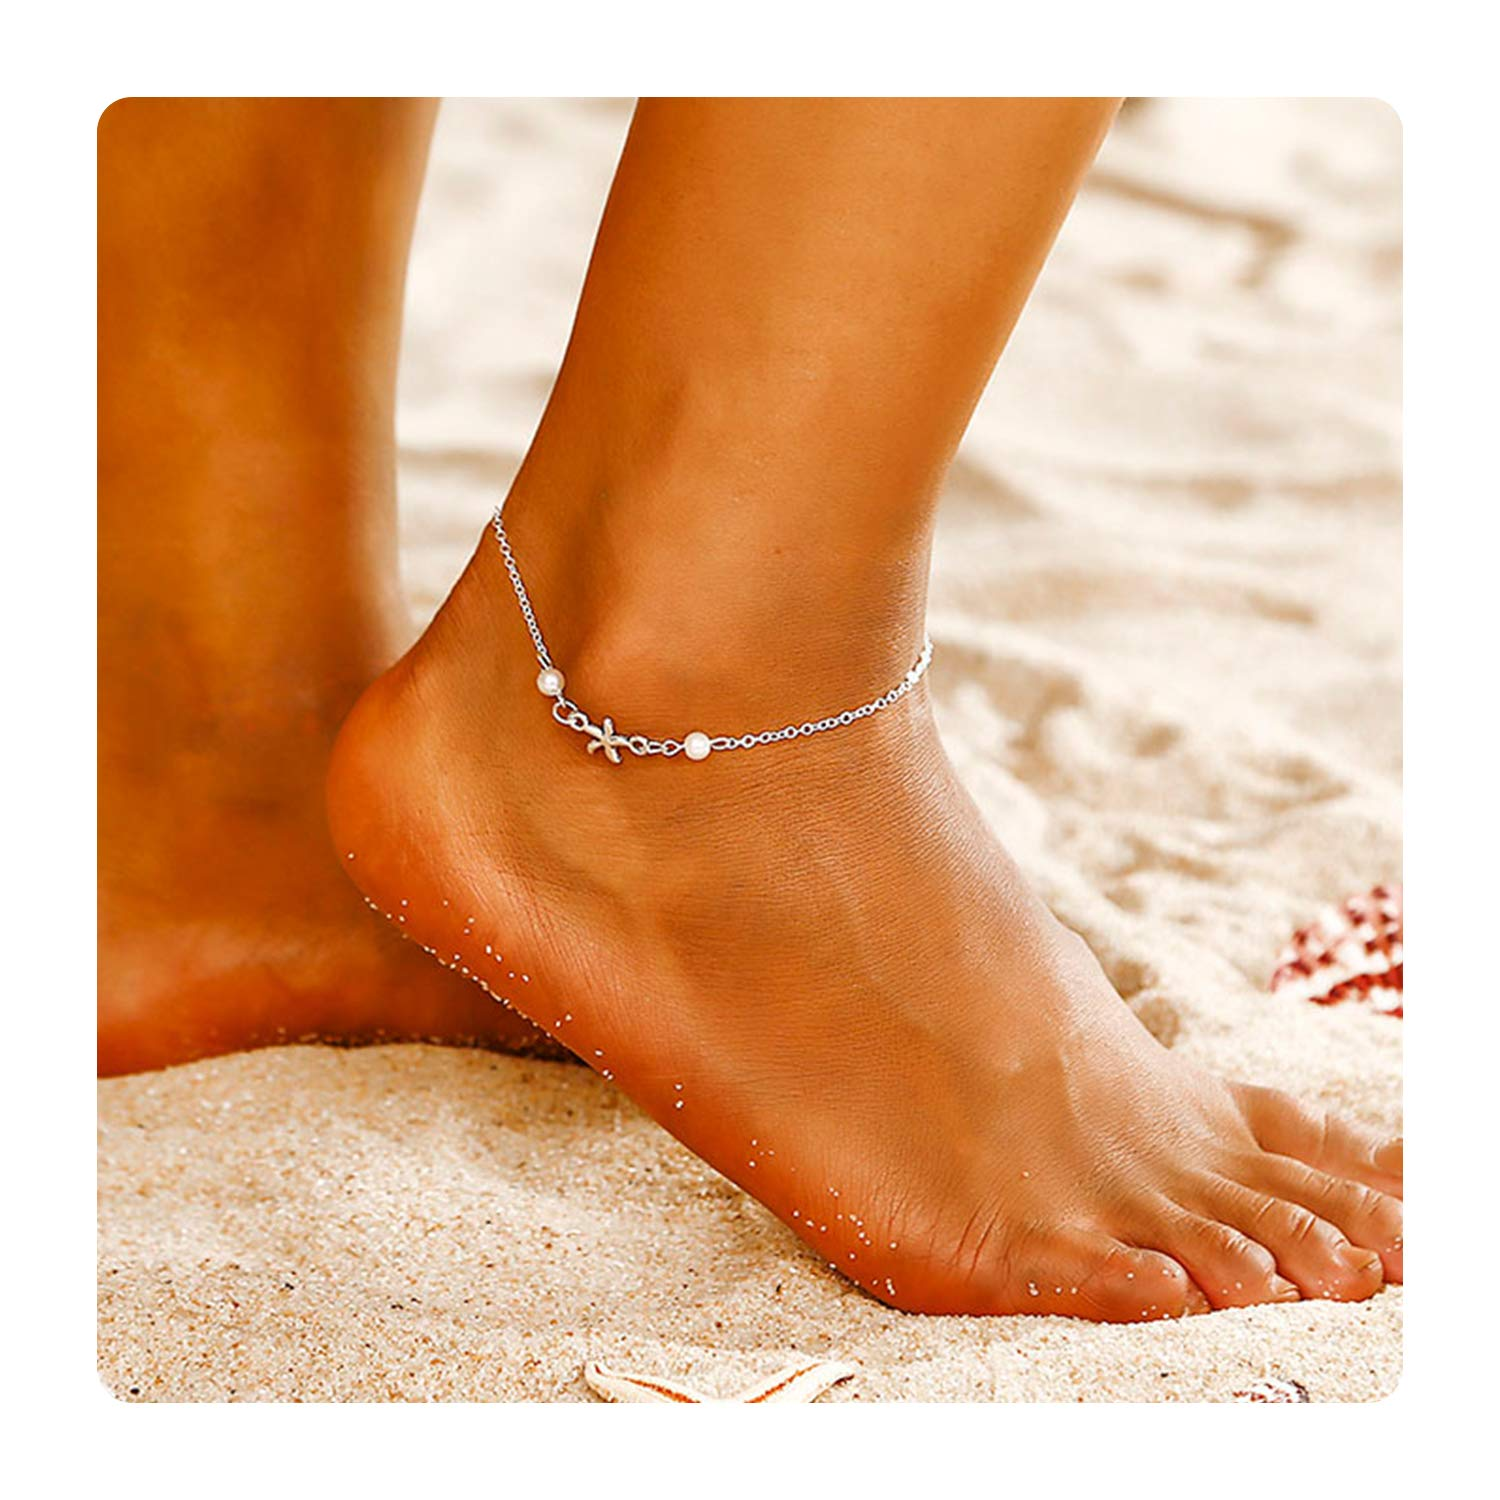 Esberry Starfish Anklet Charm Beach Beads Shell Anklets Boho Heart Silver Plated Foot Chains Handmade Jewelry for Women and Girls